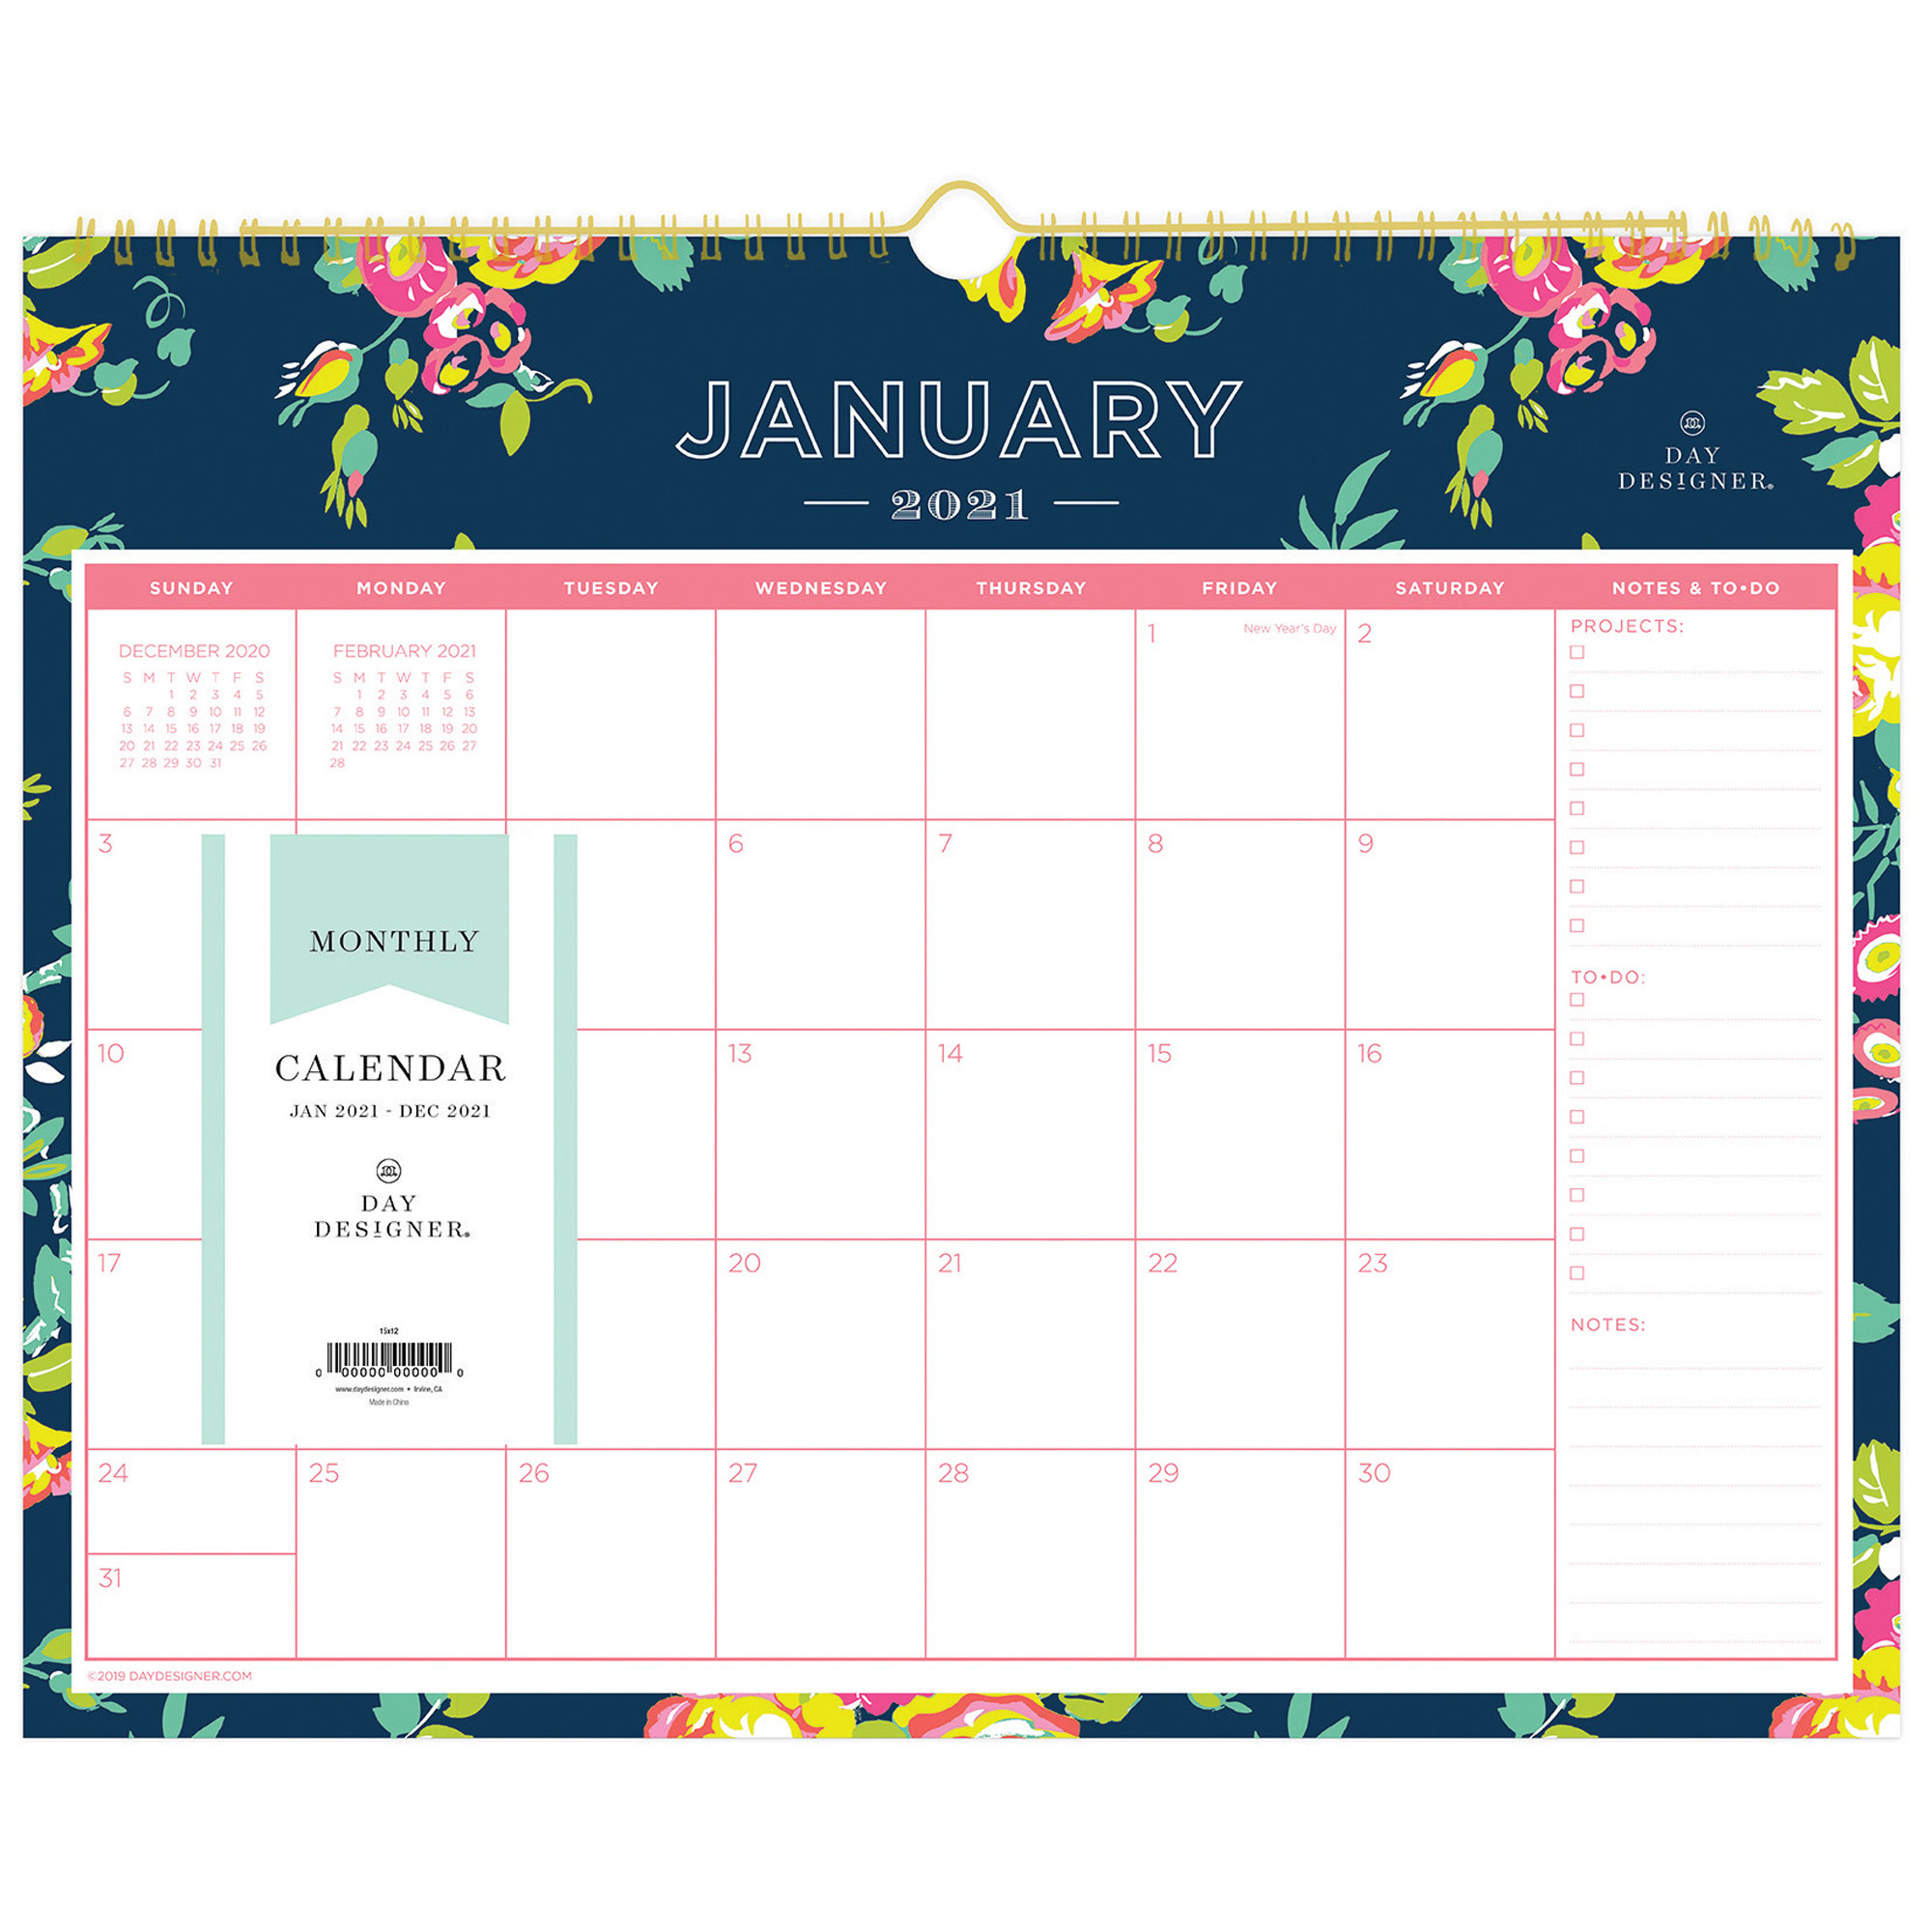 Blue Sky Day Designer Navy Floral Wall Calendar Yes Monthly 1 Year January till December Wall Mountable Multi Navy Floral BLS x